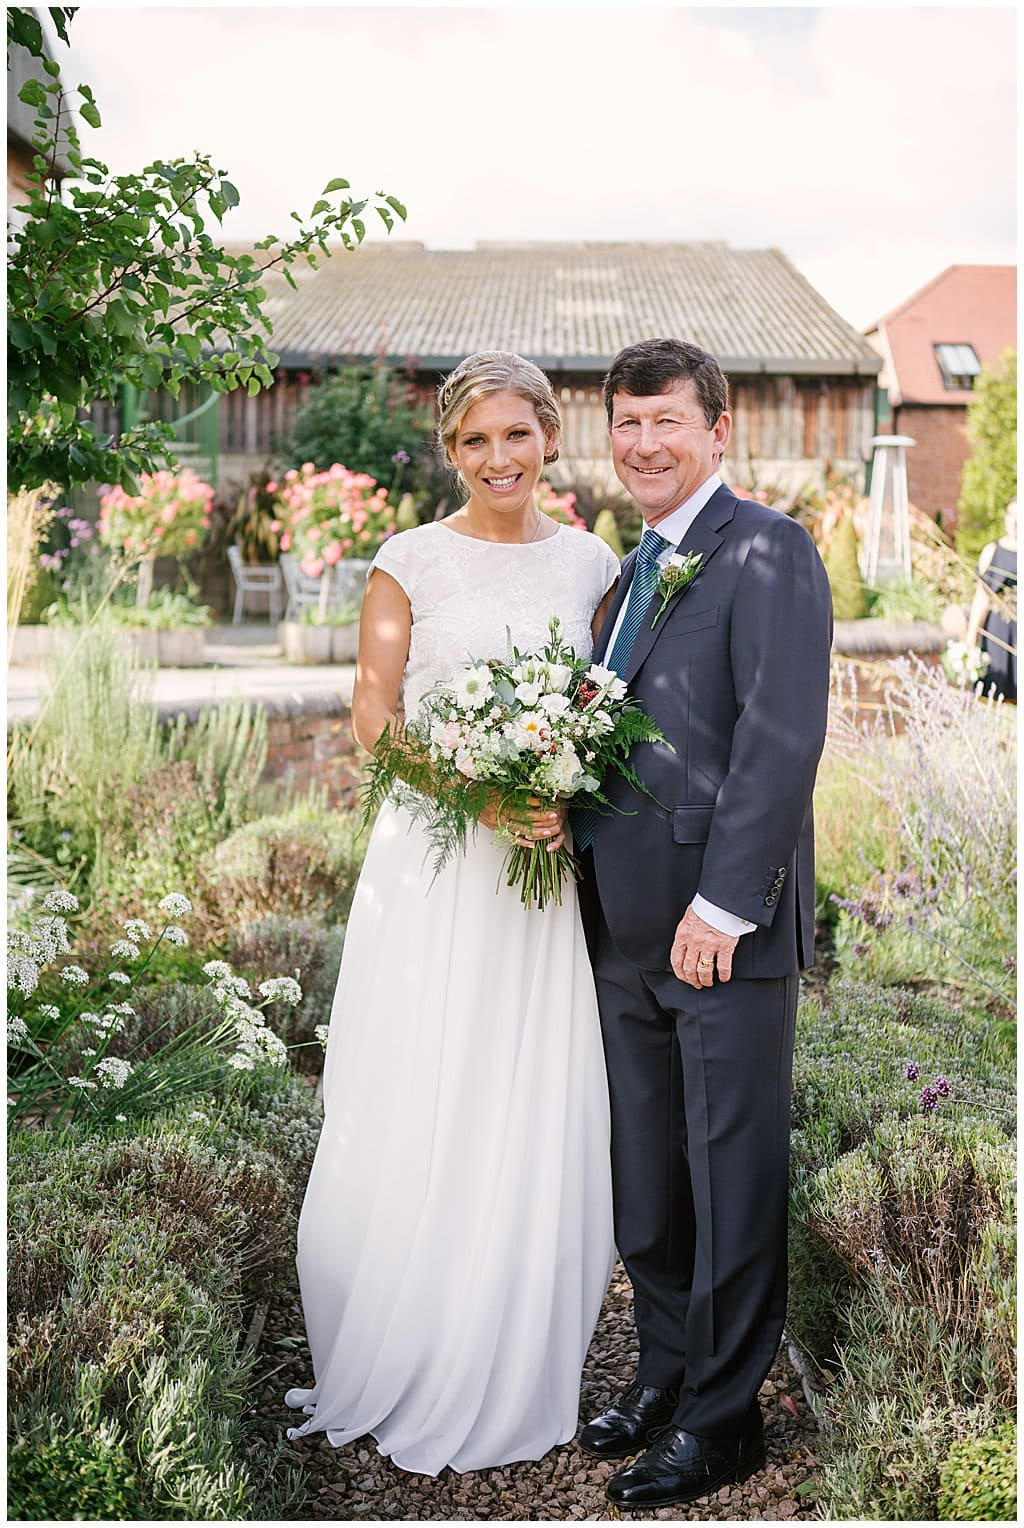 small and intimate wedding at Eckington Mannor